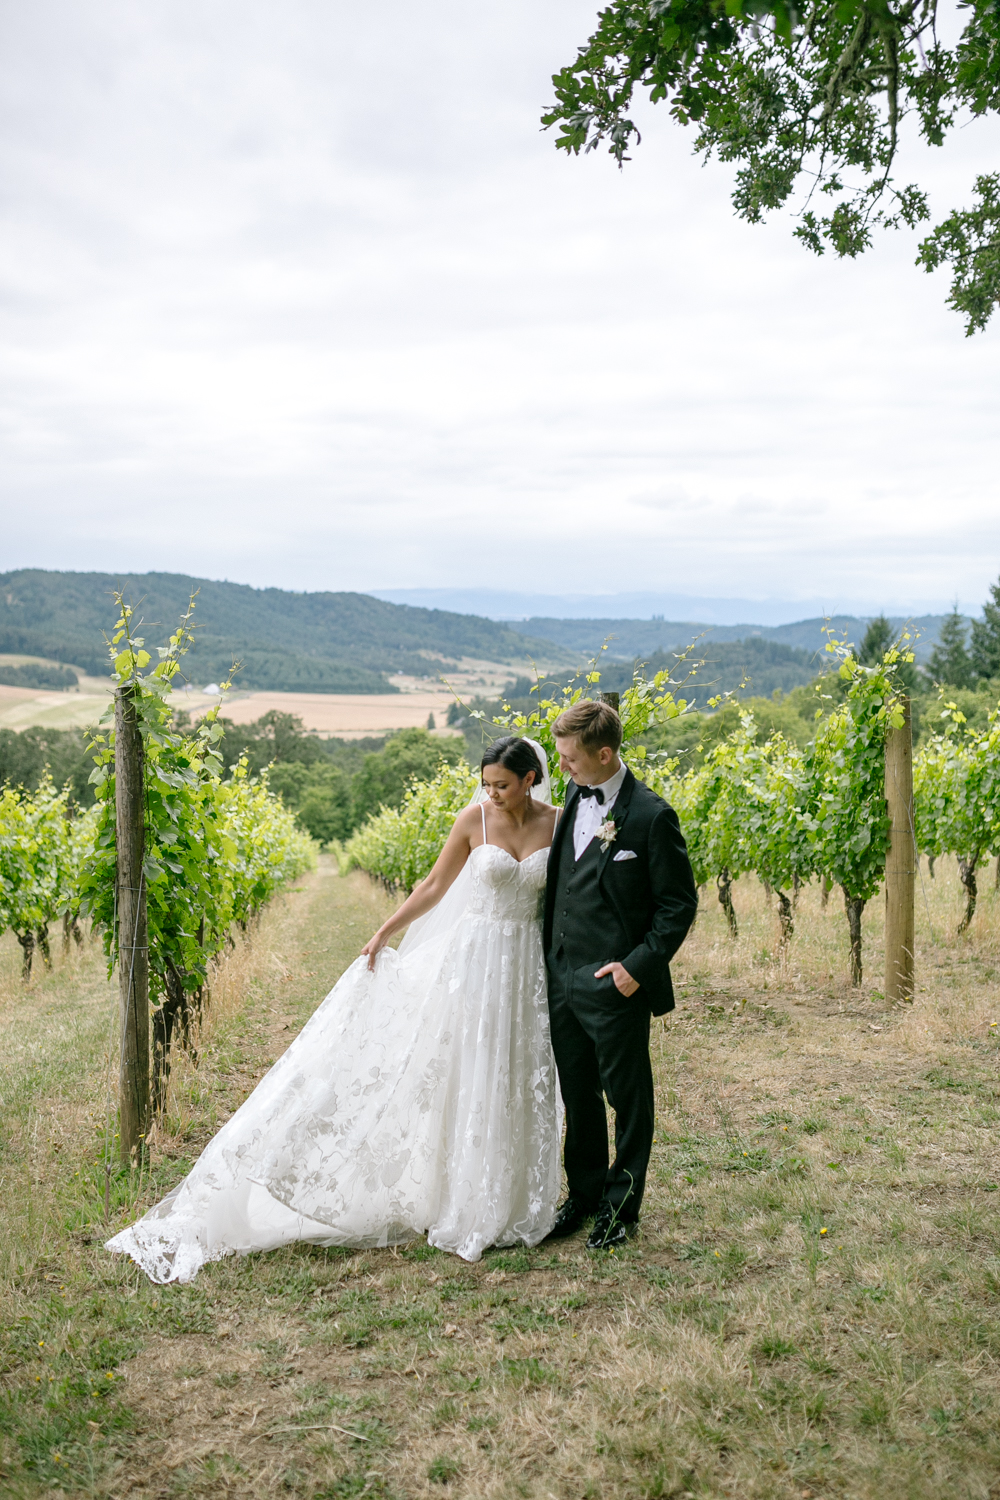 Youngberg Hill Vineyard Wedding in Wine Country Oregon - Corrie Mick Photography-45.jpg